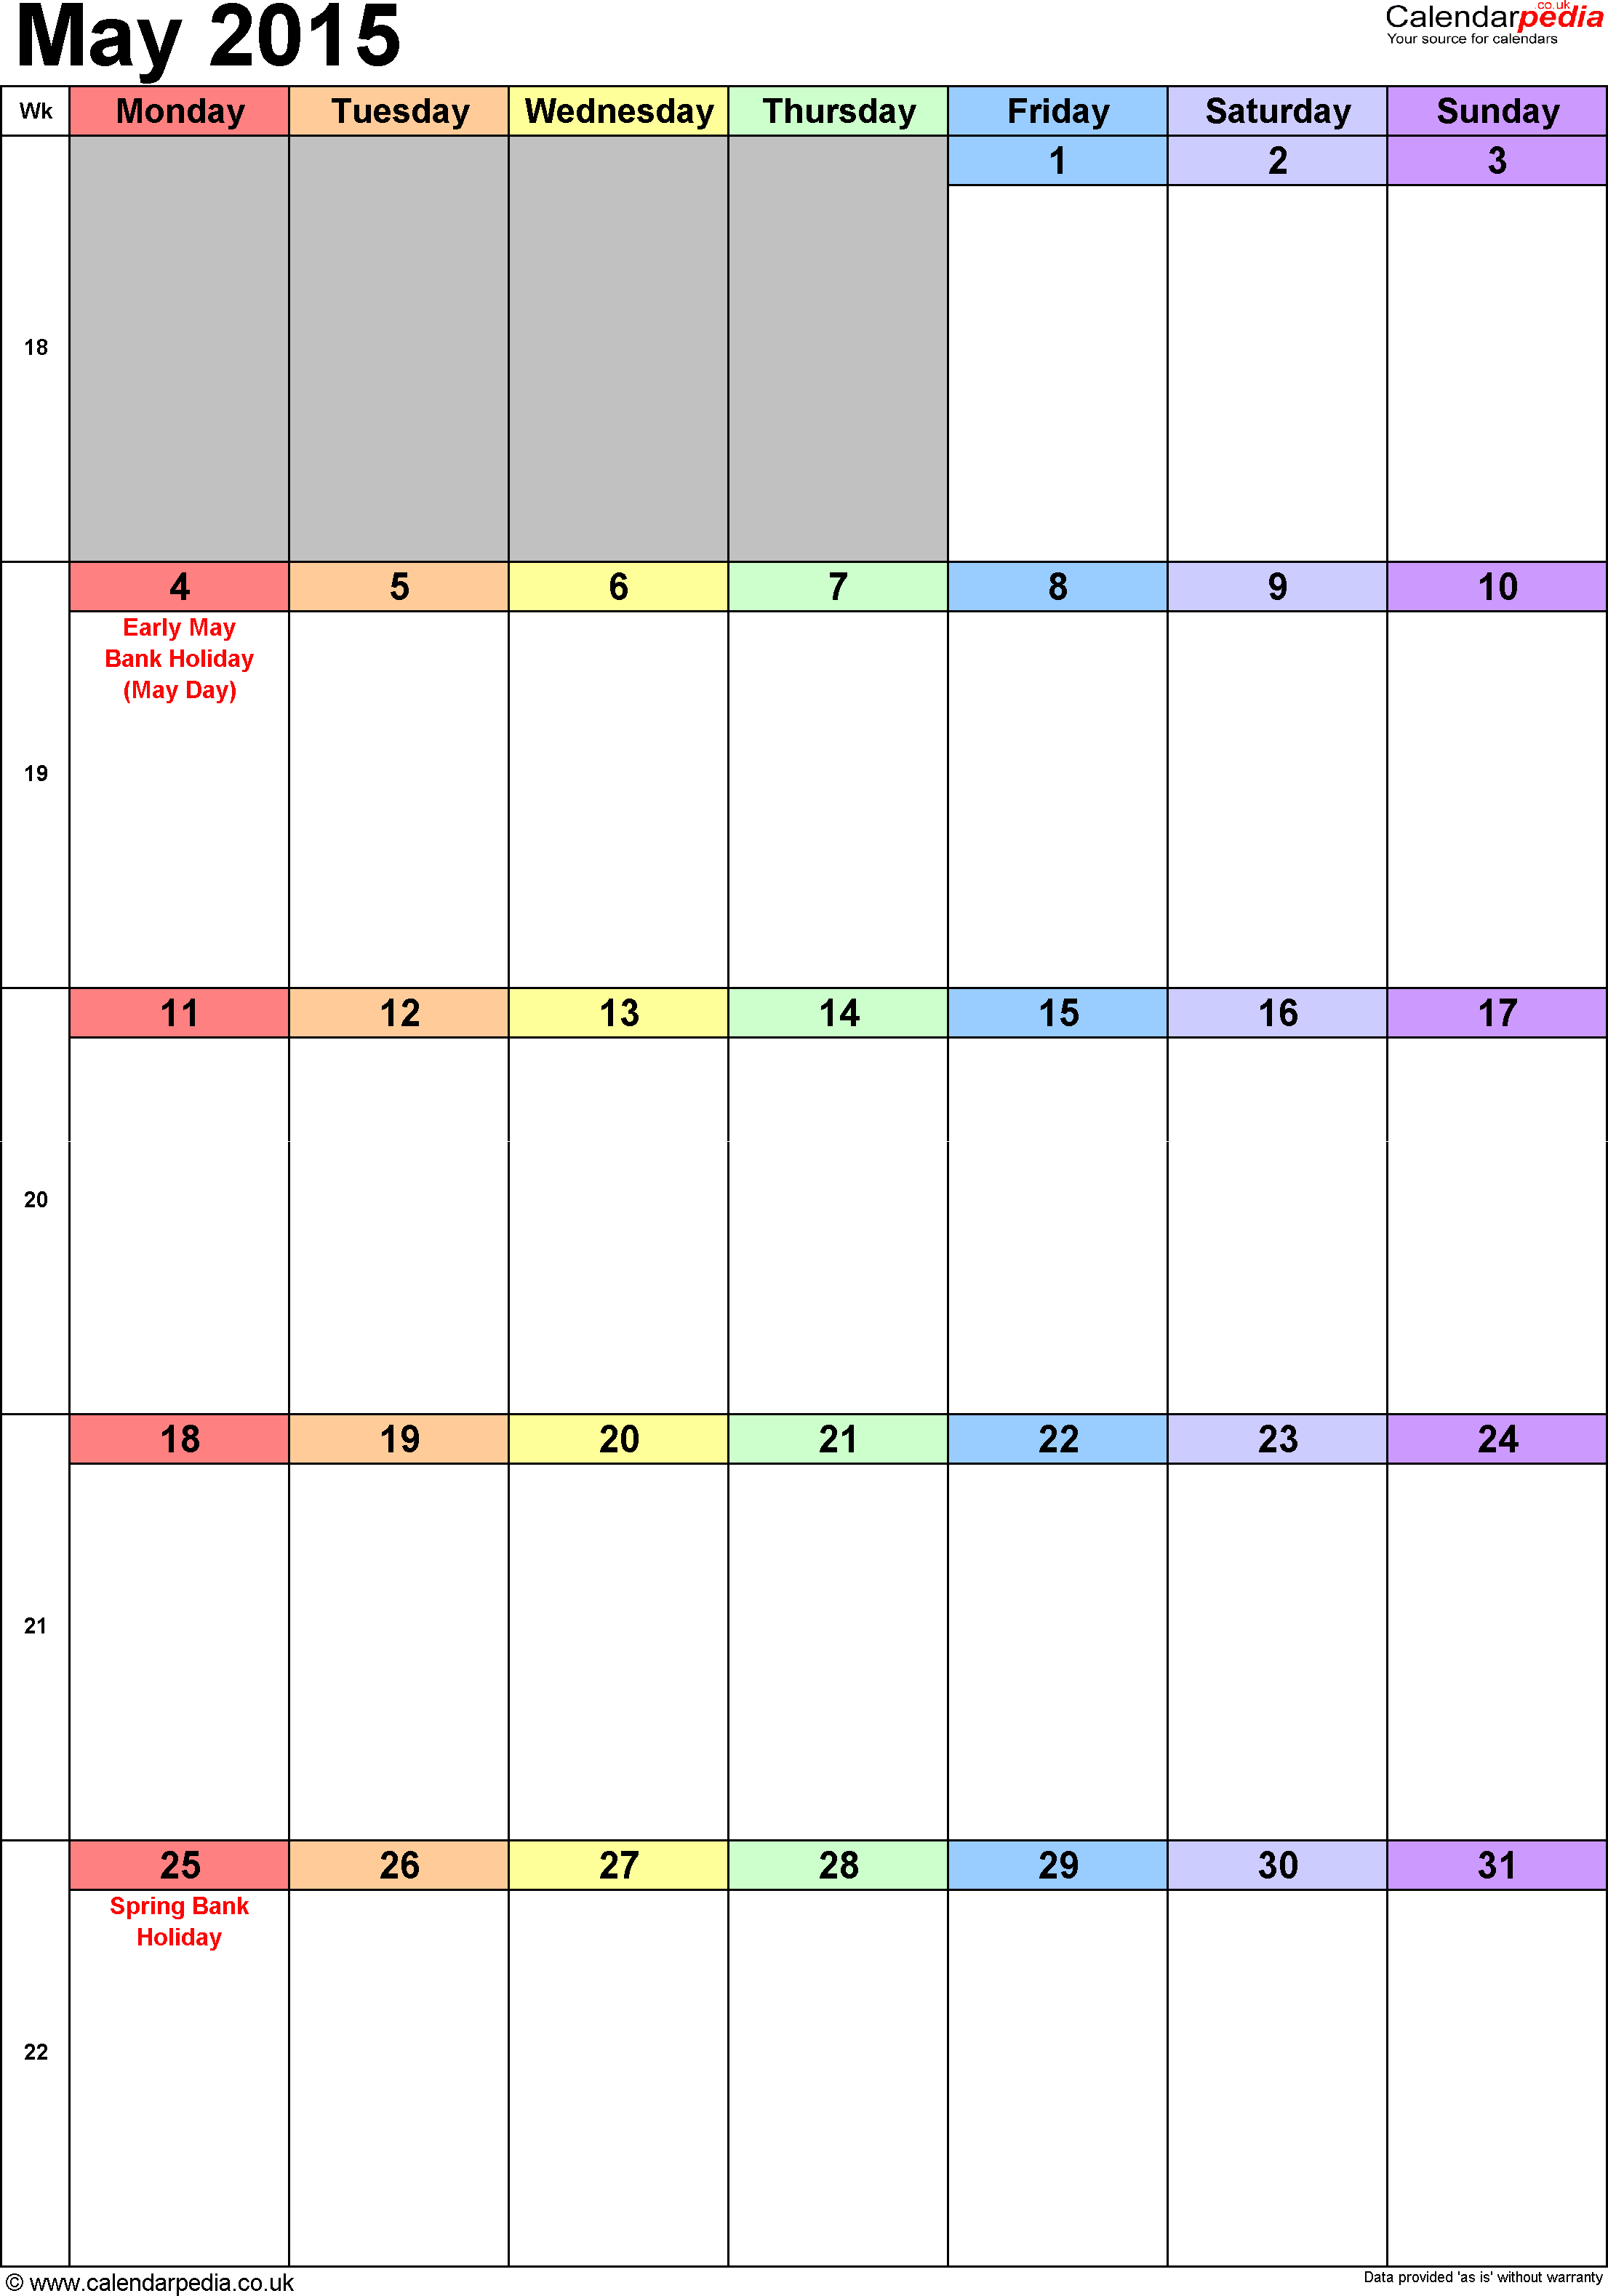 Calendar May 2015 portrait orientation, 1 page, with UK bank holidays and week numbers